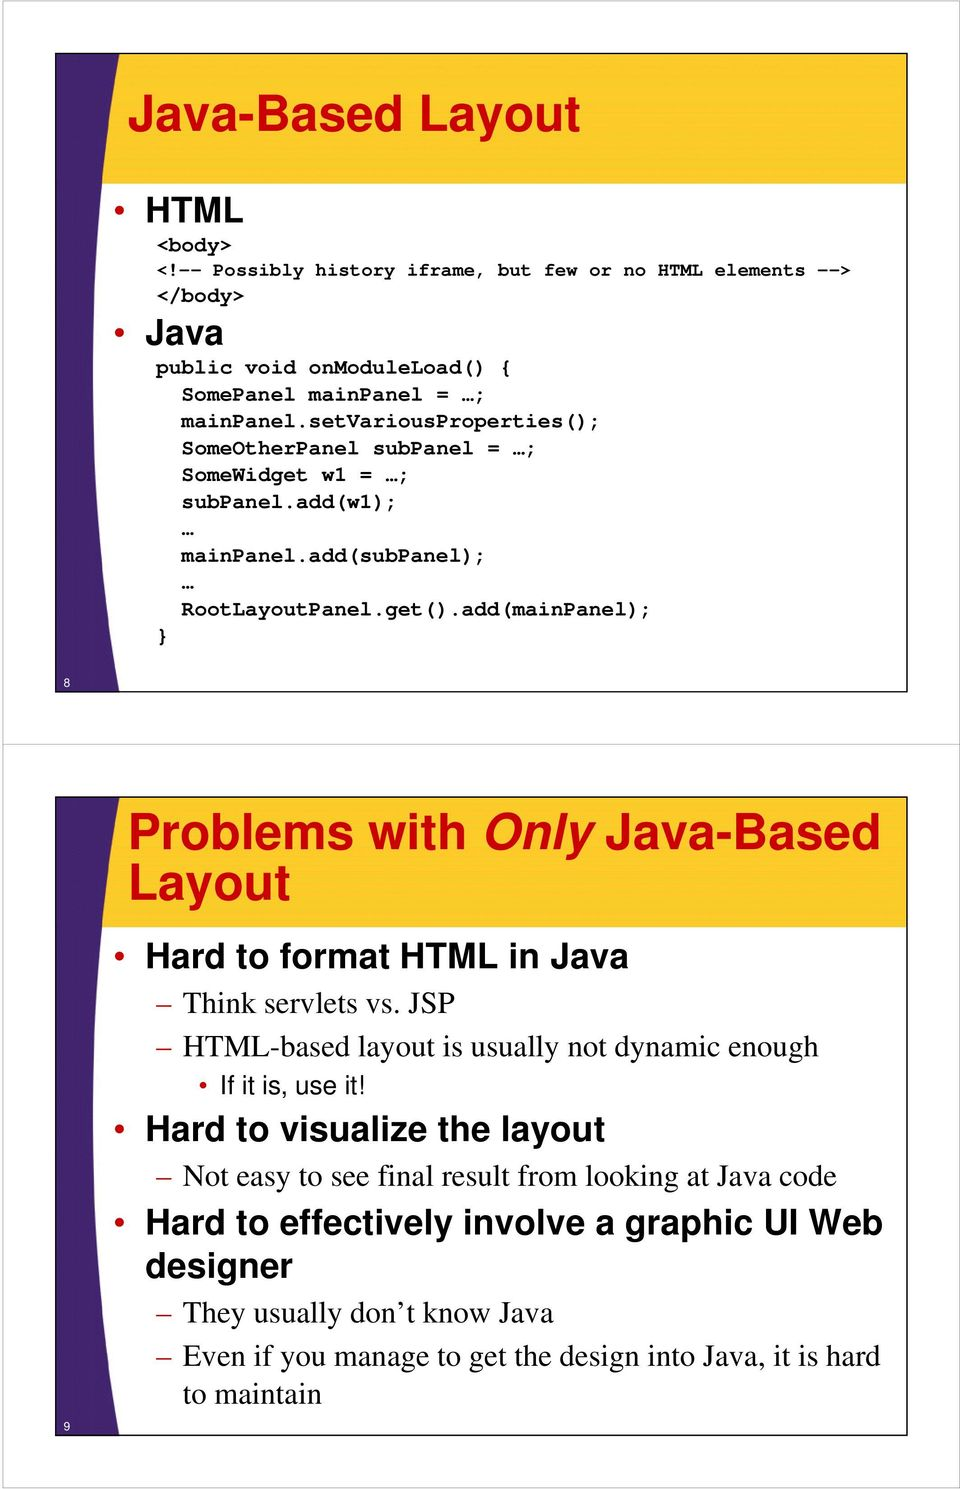 add(mainPanel); 8 9 Problems with Only Java-Based Layout Hard to format HTML in Java Think servlets vs. JSP HTML-based layout is usually not dynamic enough If it is, use it!